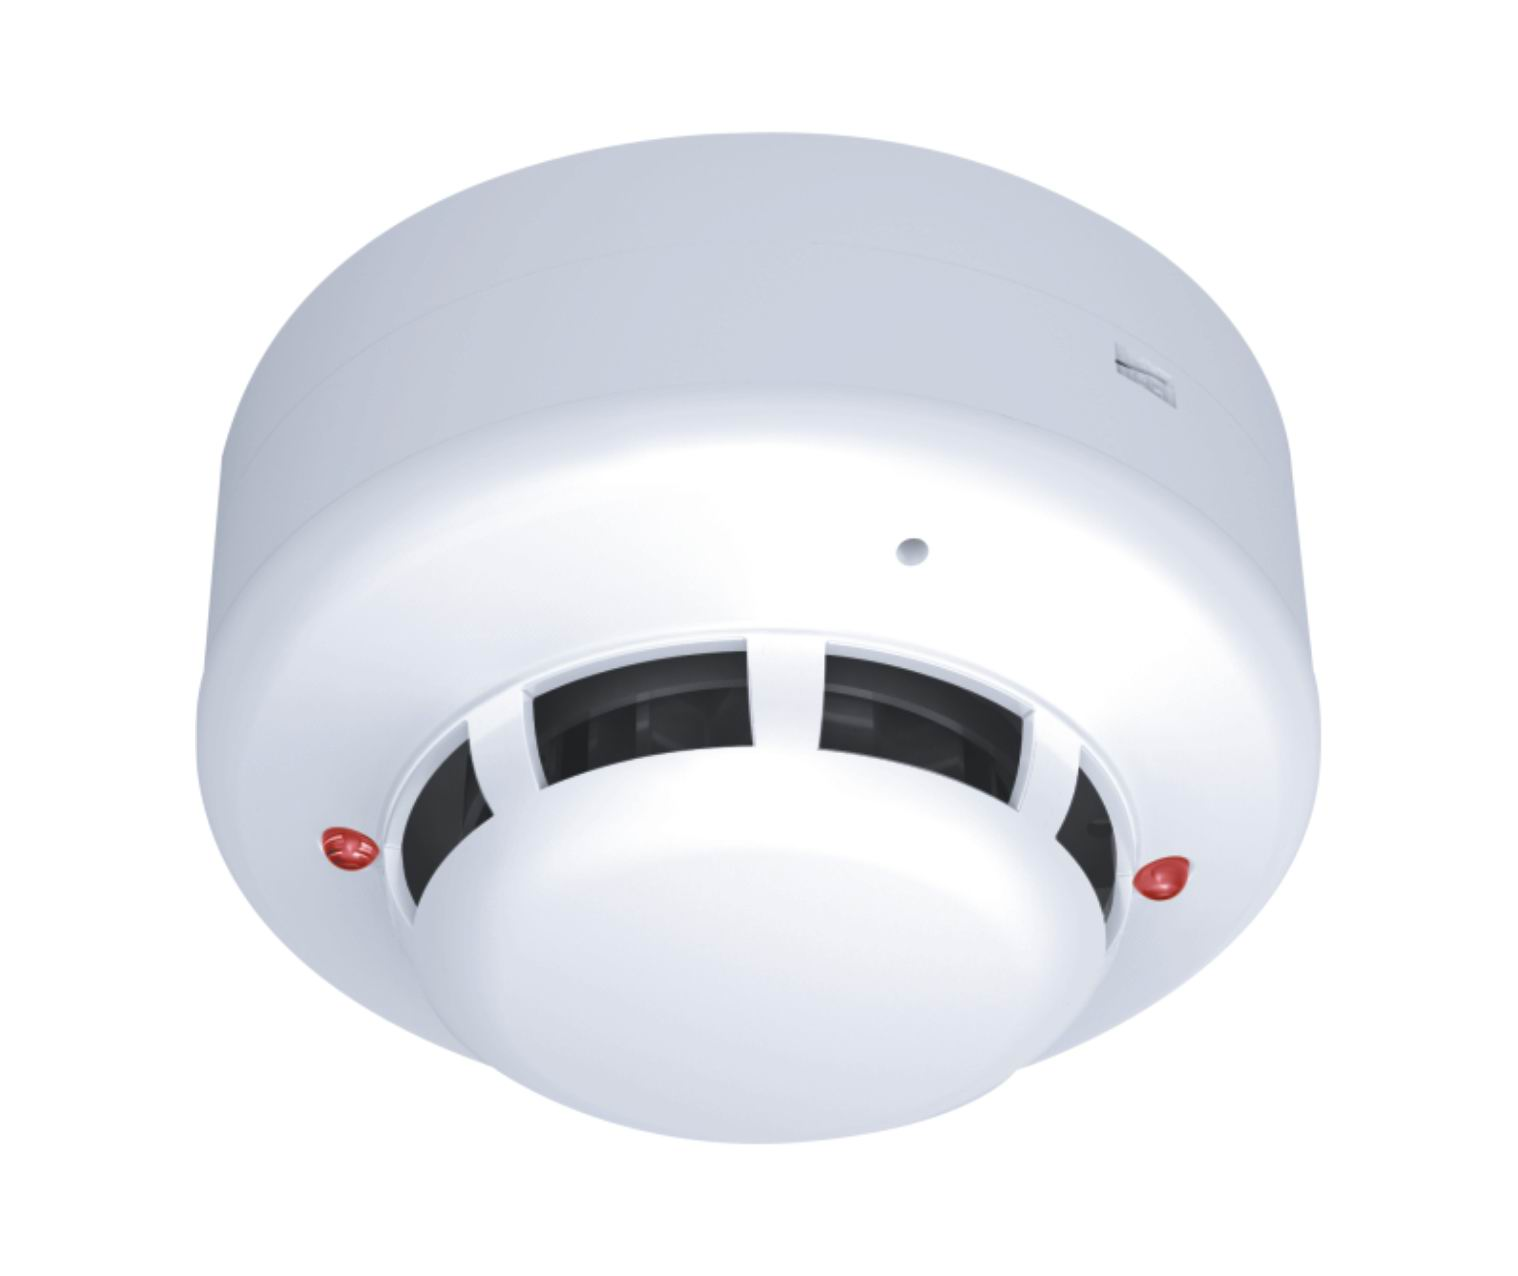 smoke detector Smoke detector market is a sensing device used for combating fire by signaling out indications of smoke incidences the global market is expected to reach $2,602.